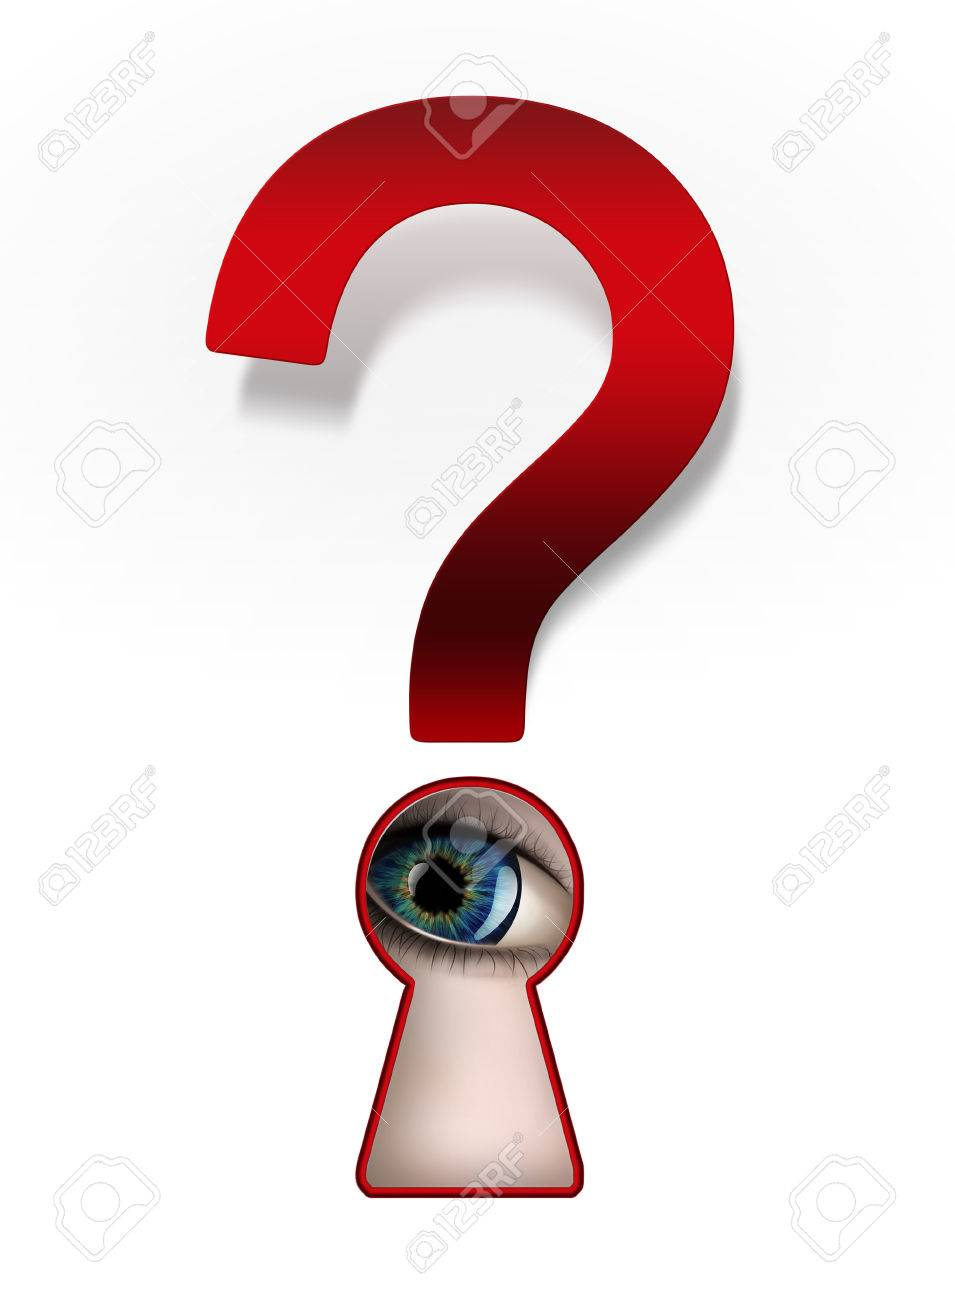 Spying eye under a question mark Stock Photo - 22497664